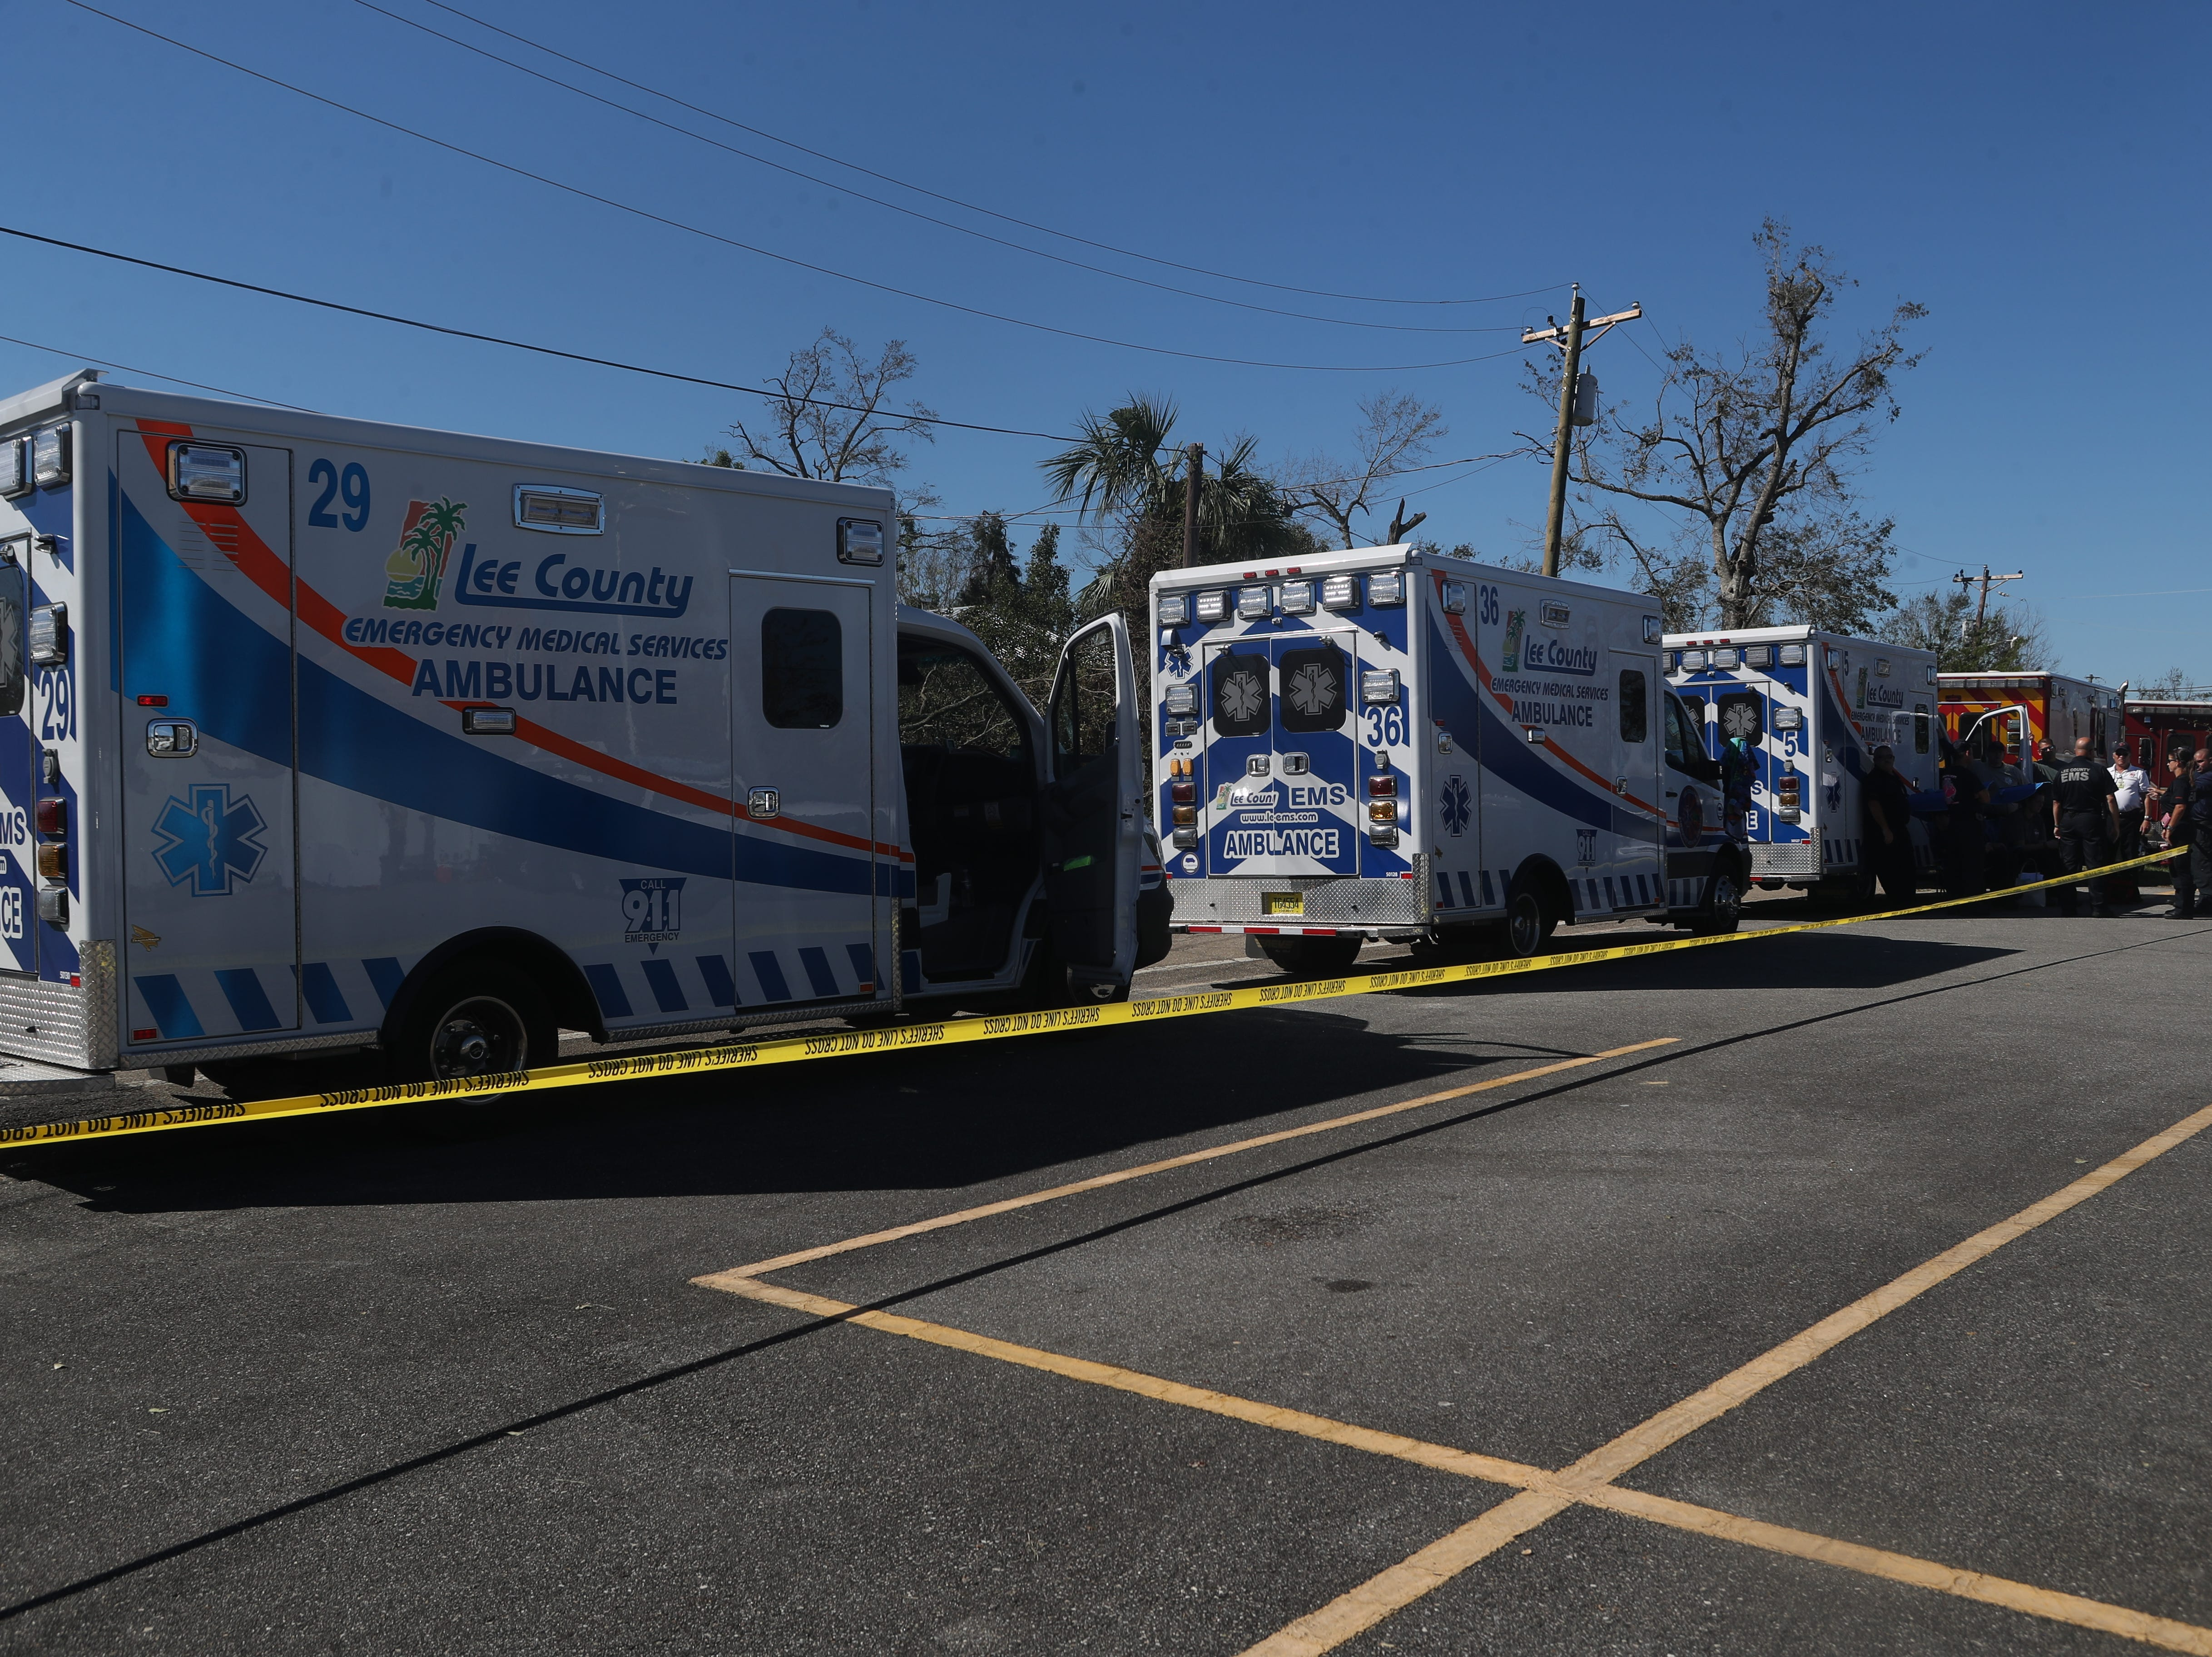 Emergency response teams stage at the Calhoun County Courthouse in Blountstown, Fla. in the aftermath of Hurricane Michael Friday, Oct. 12, 2018.